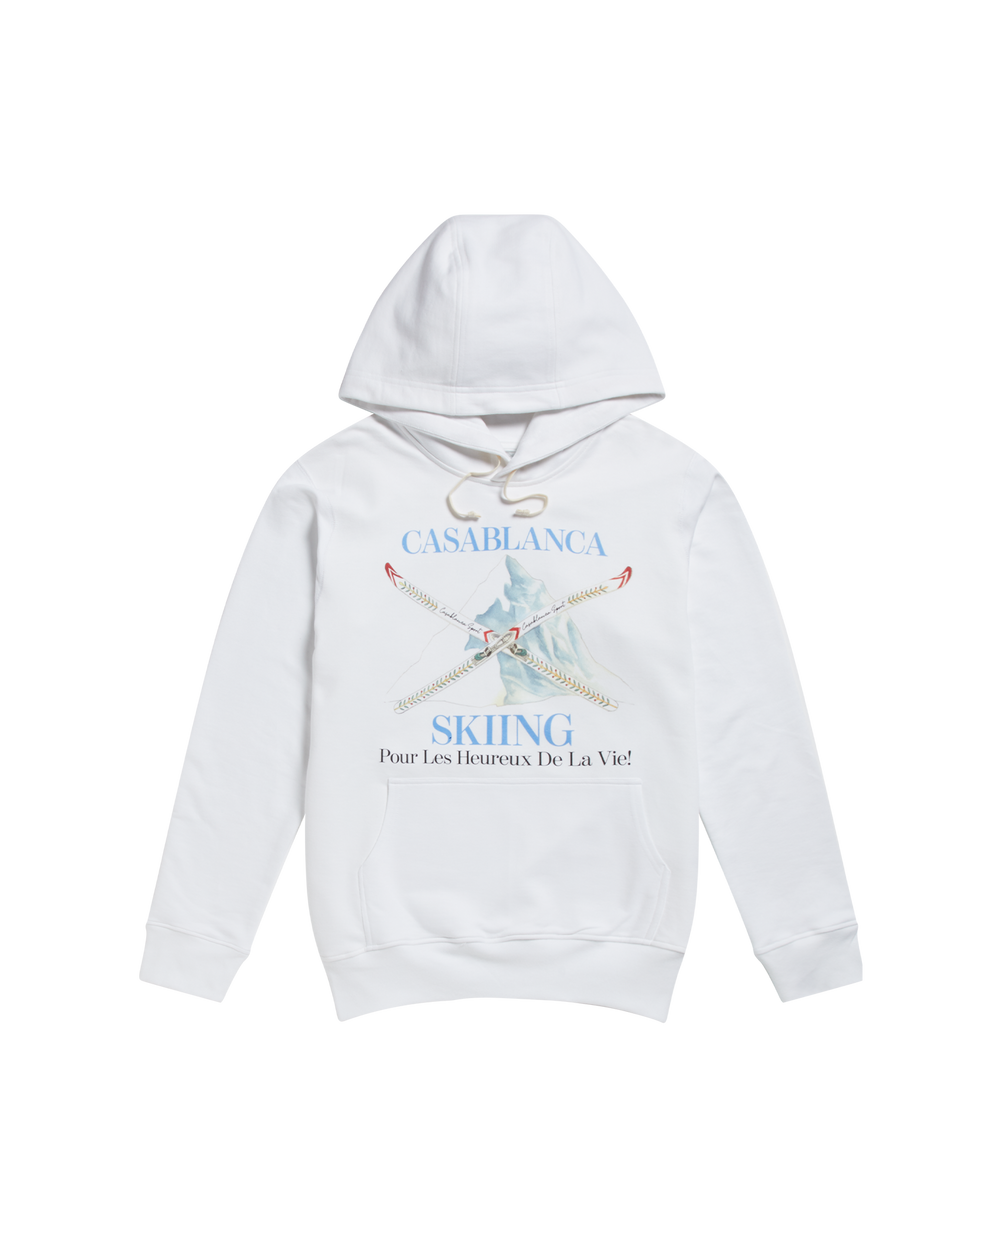 Casablanca Skiing Hooded Sweatshirt